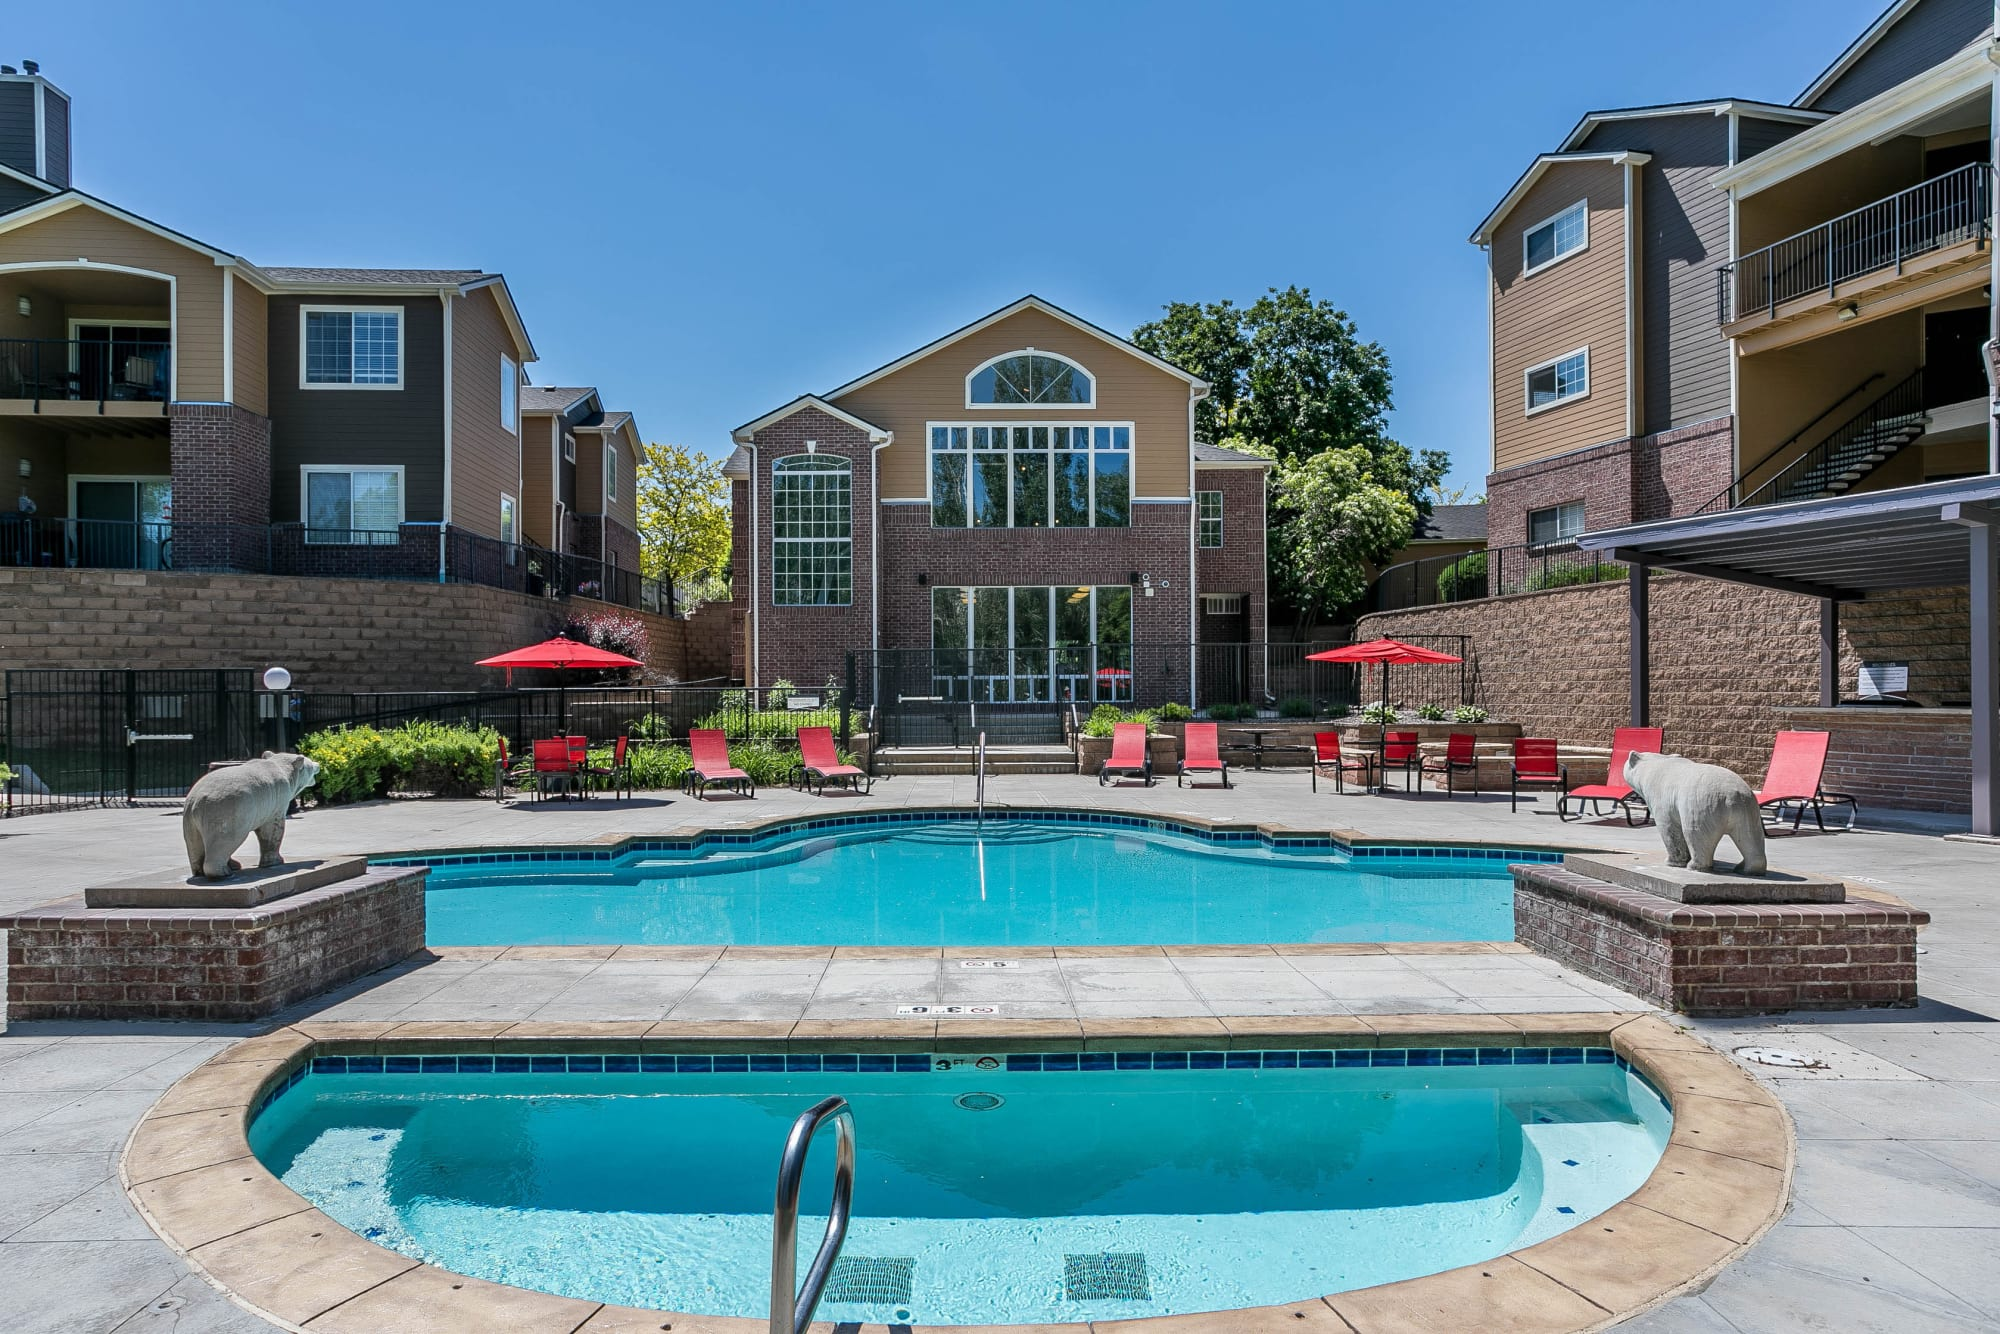 The spa and pool with lounge chairs, umbrellas, BBQ and corn hole at The Crossings at Bear Creek Apartments in Lakewood, Colorado